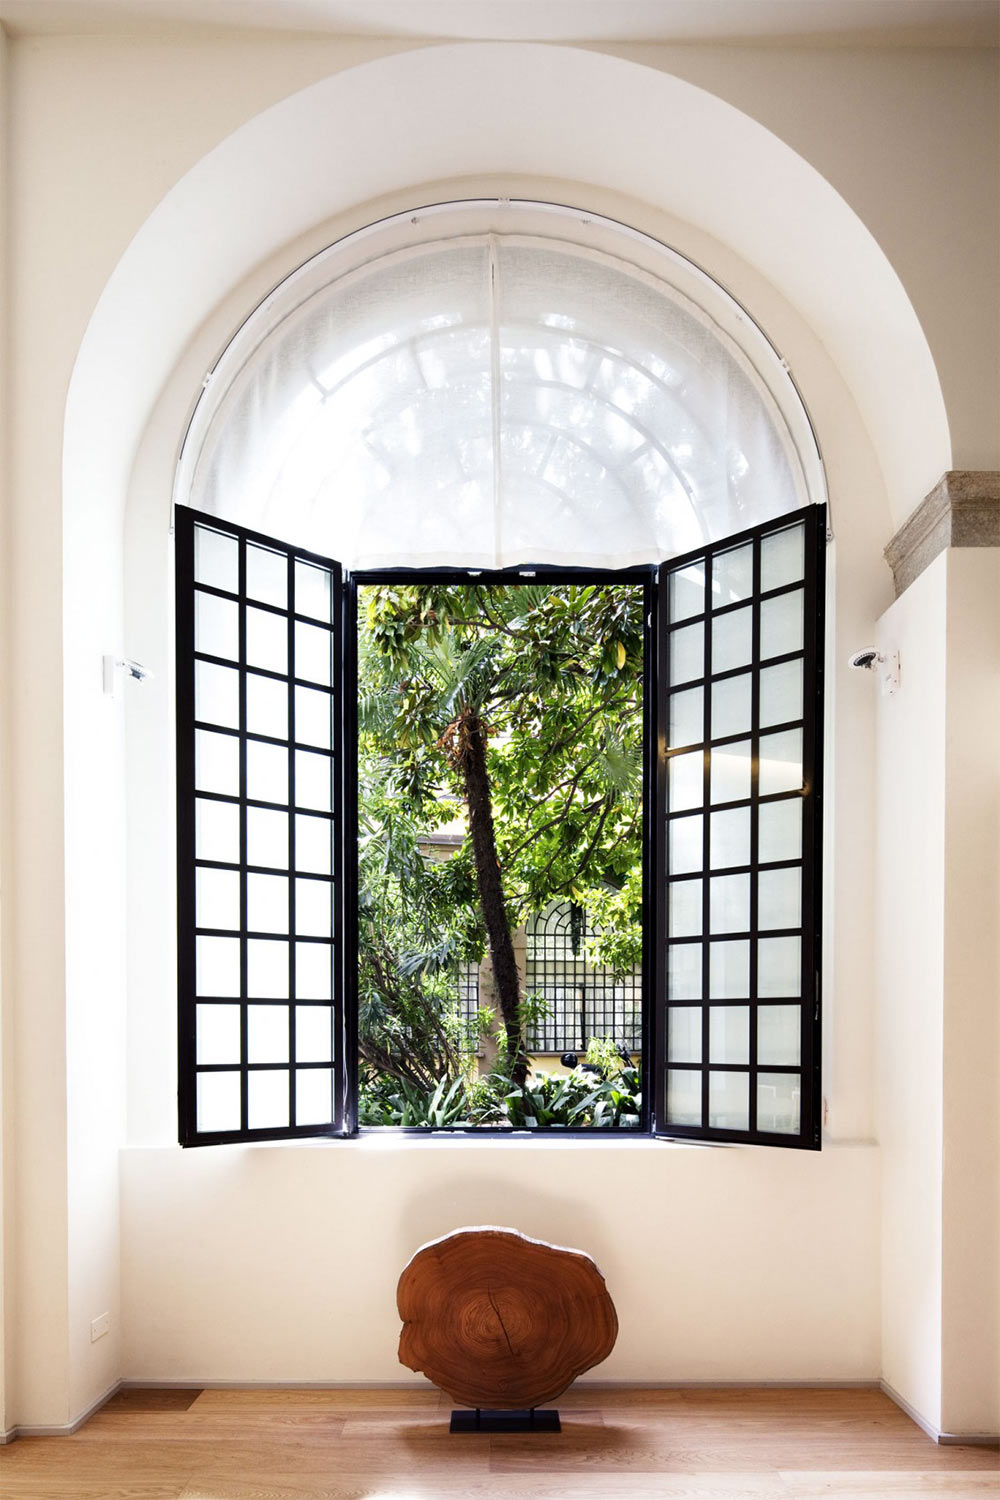 Window, T House in Sant'Ambrogio, Milan by Takane Ezoe + Modourbano